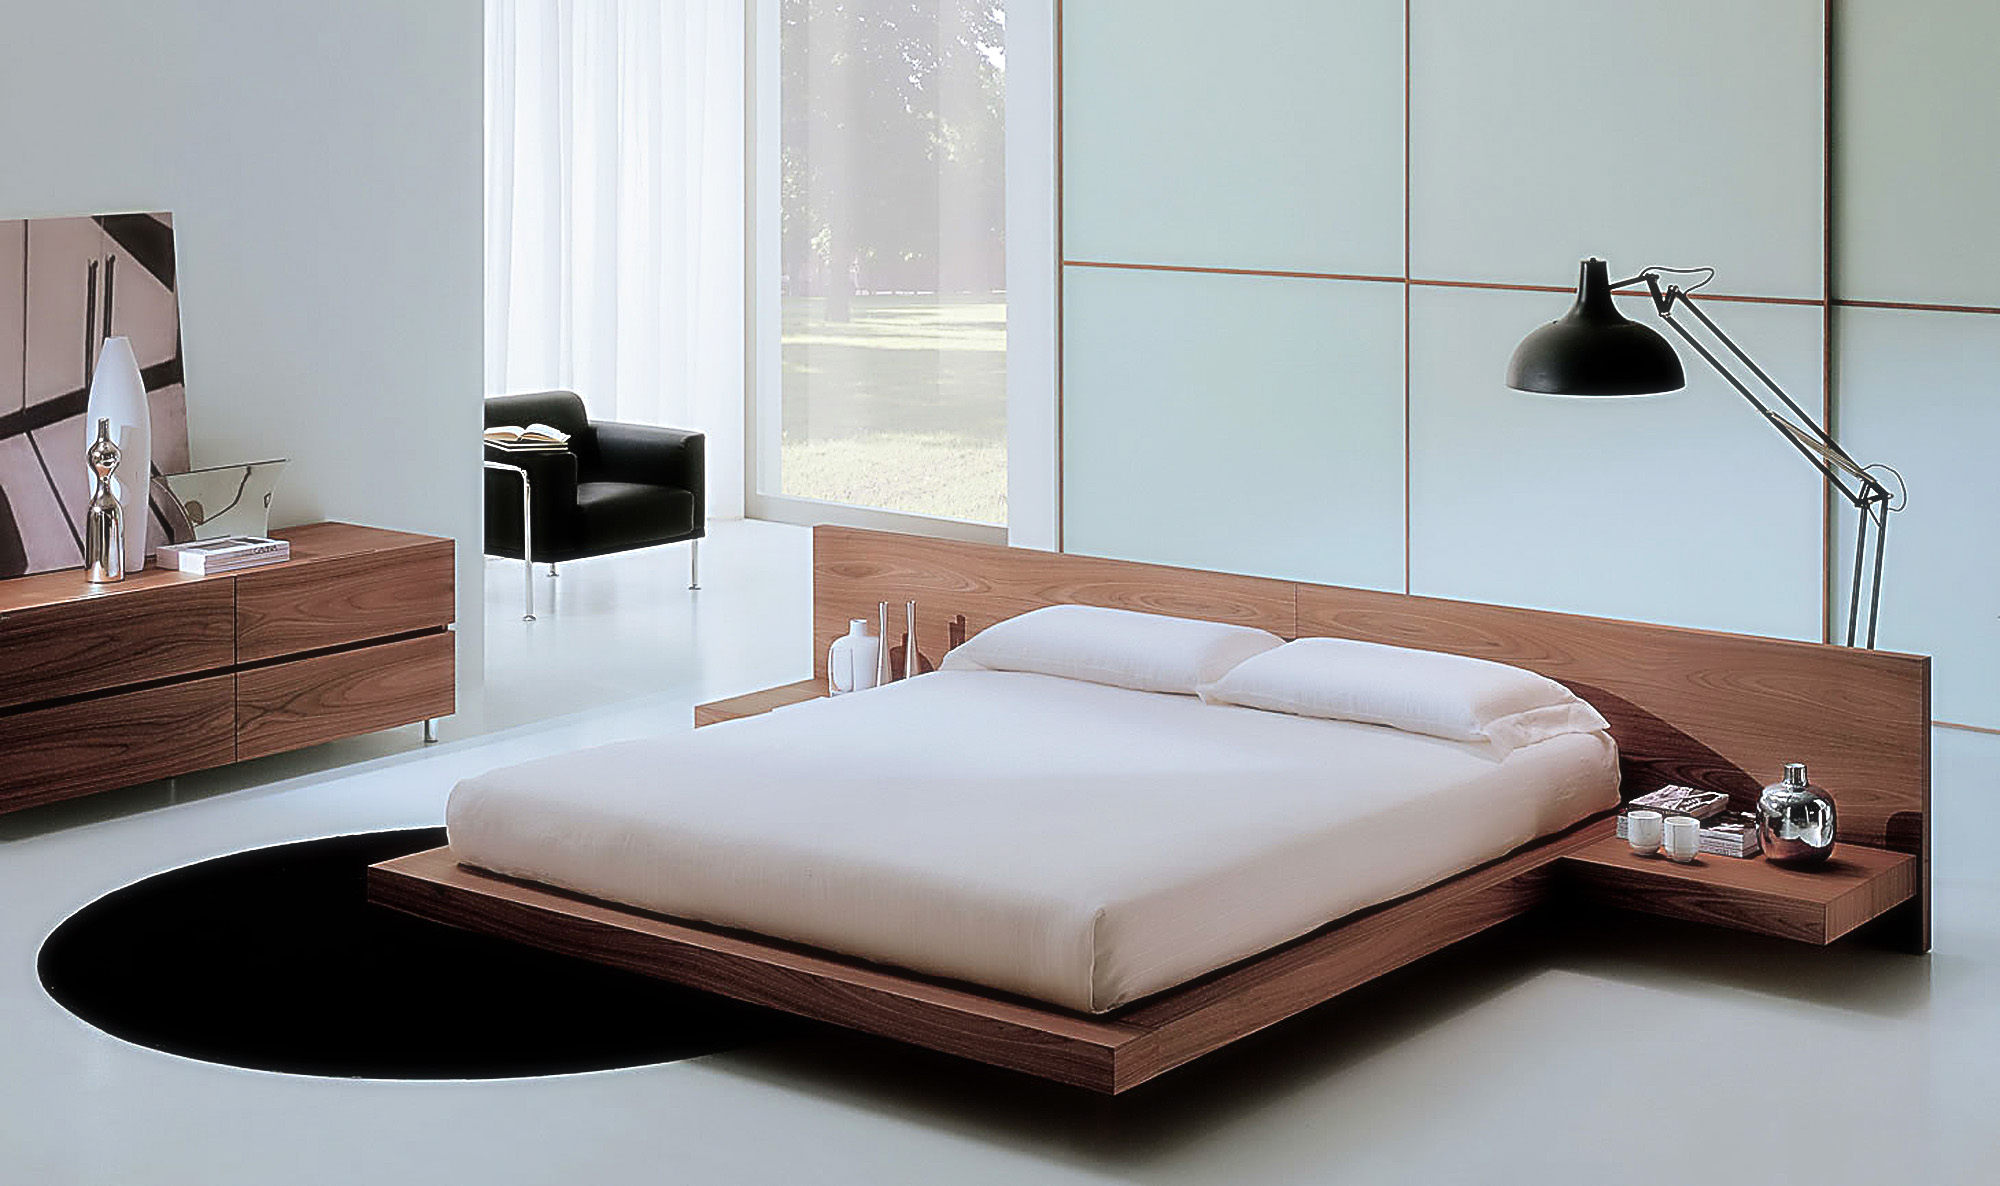 Astounding Design Of The Brown Wooden Modern Wall Color Ideas With Black Rugs And White Floor Ideas